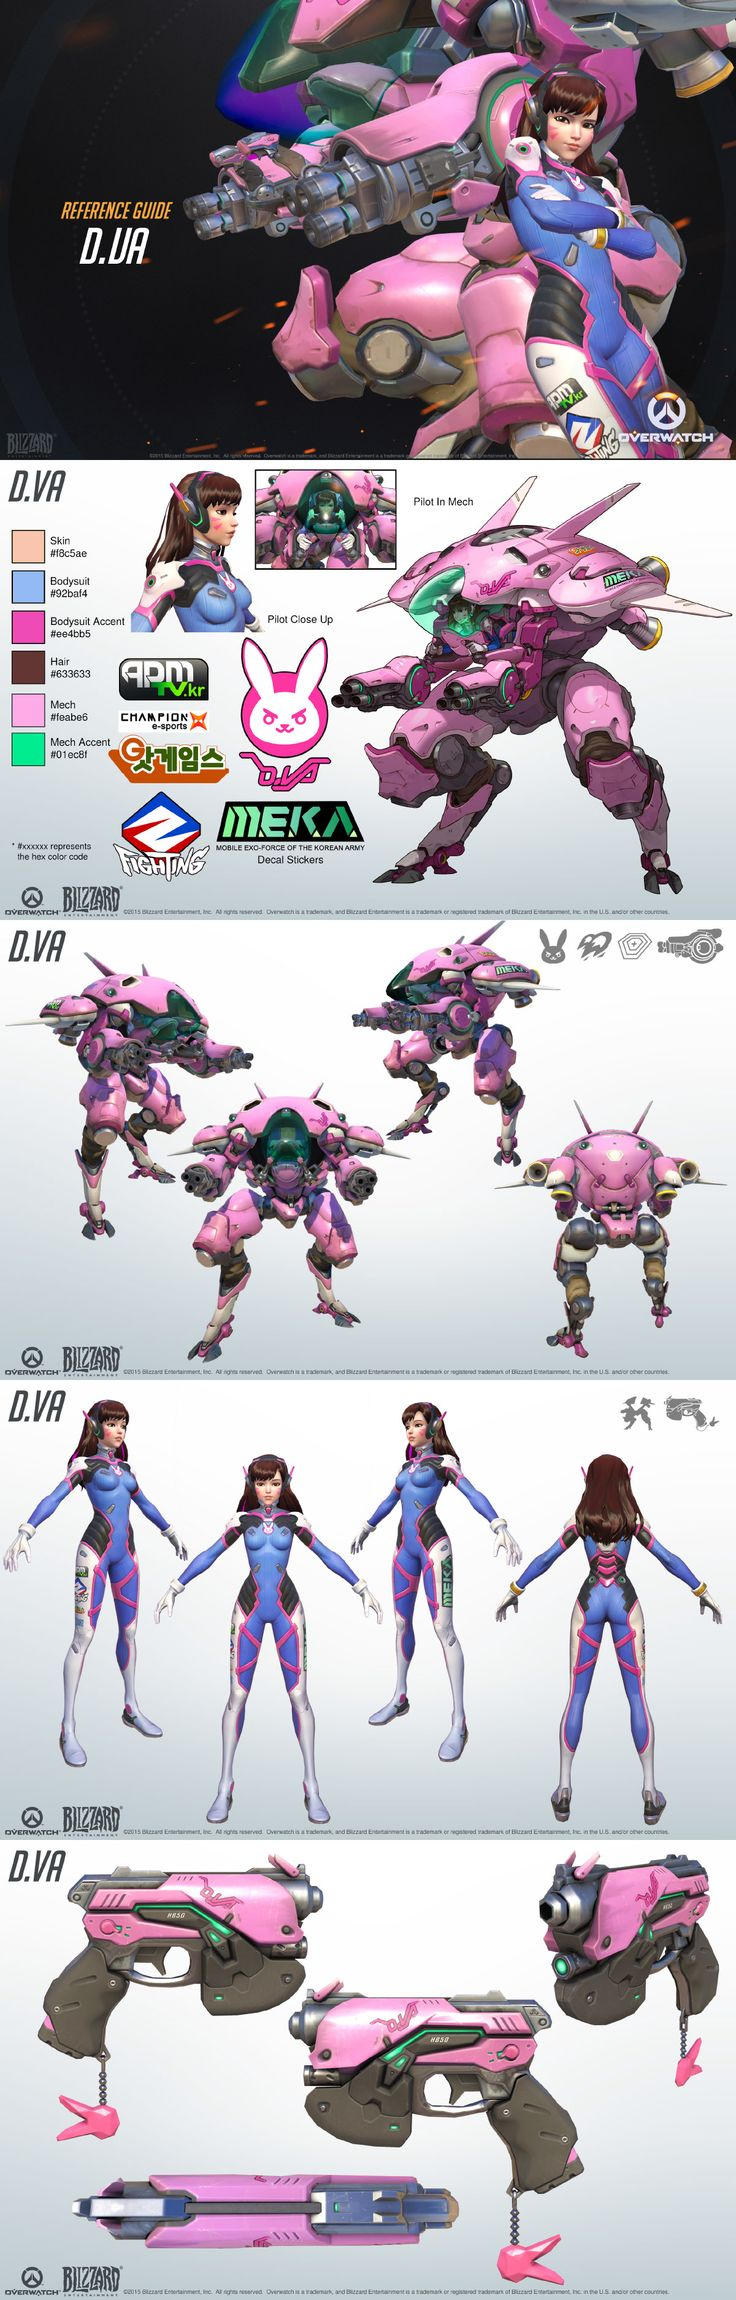 Overwatch Spotlight - D.Va! Use her mech in battle to give you the upper hand!